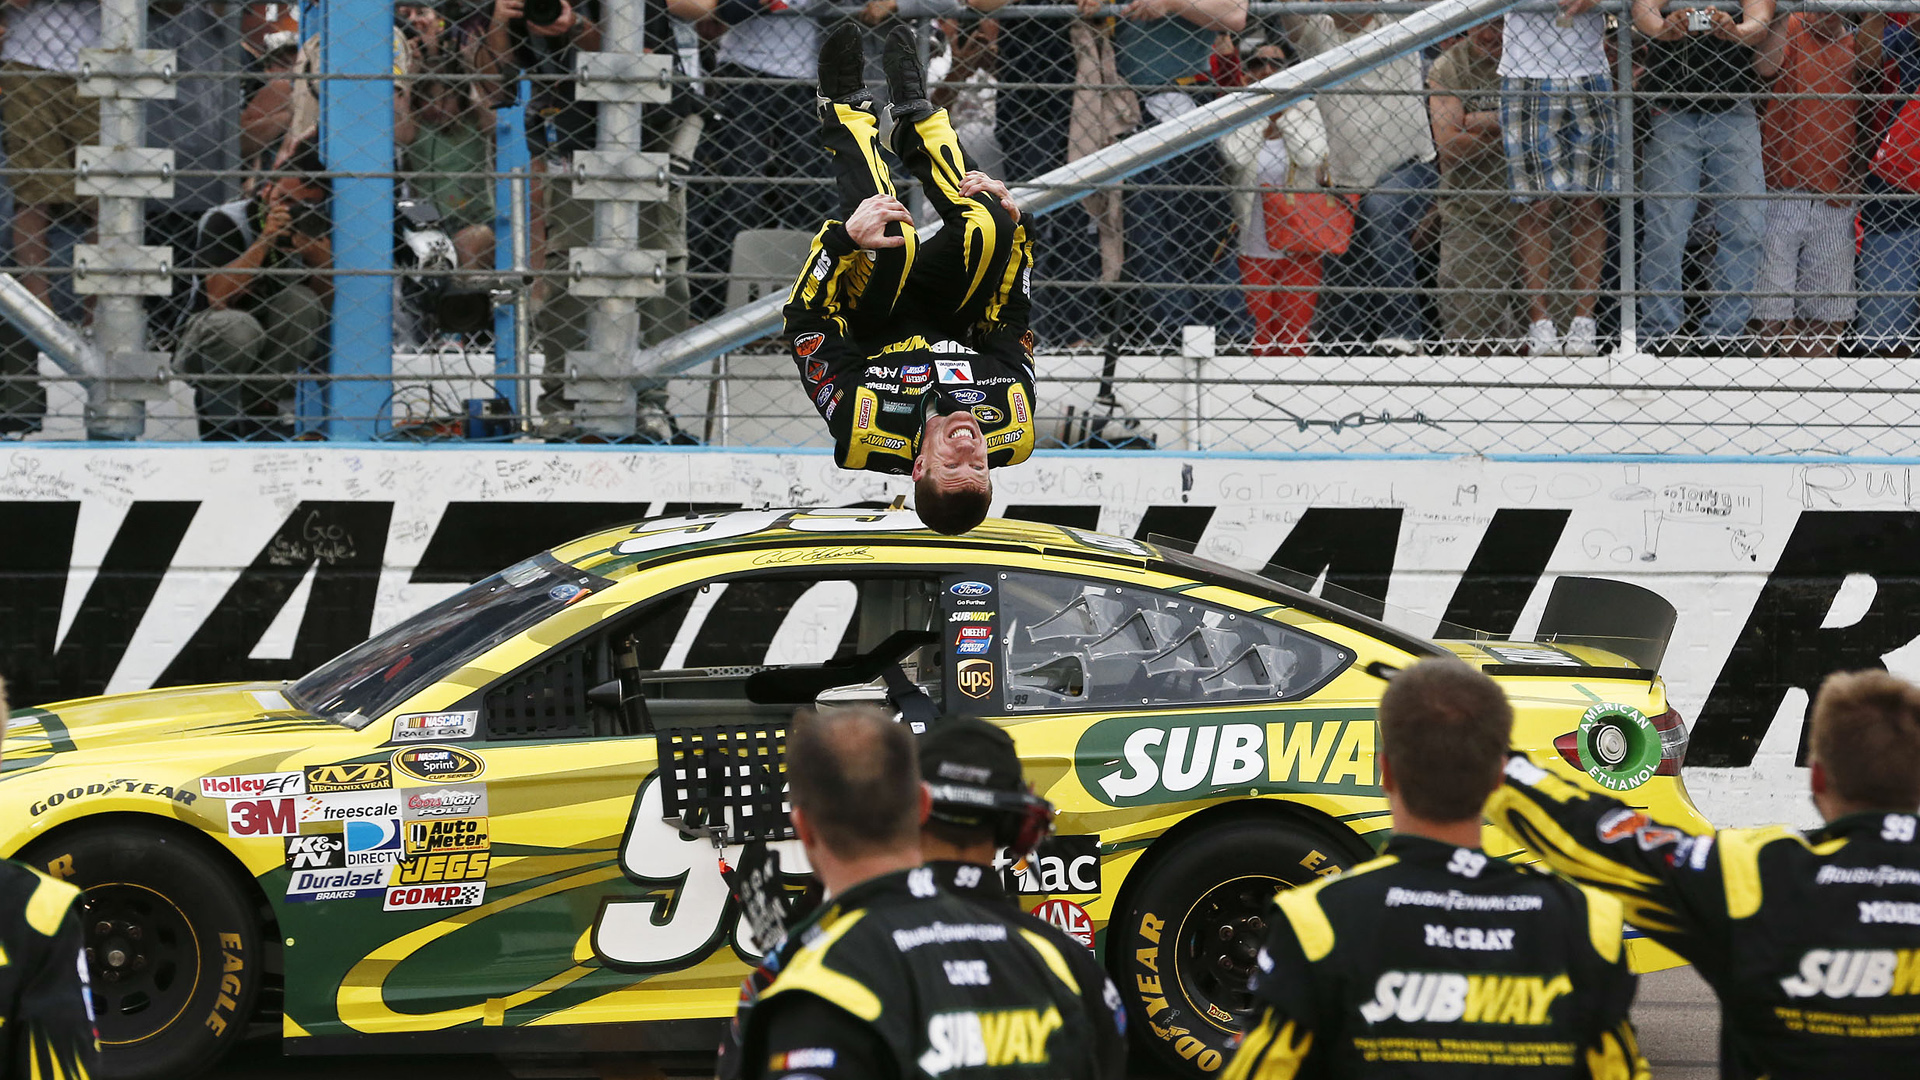 Carl Edwards-022714-AP-FTR.jpg